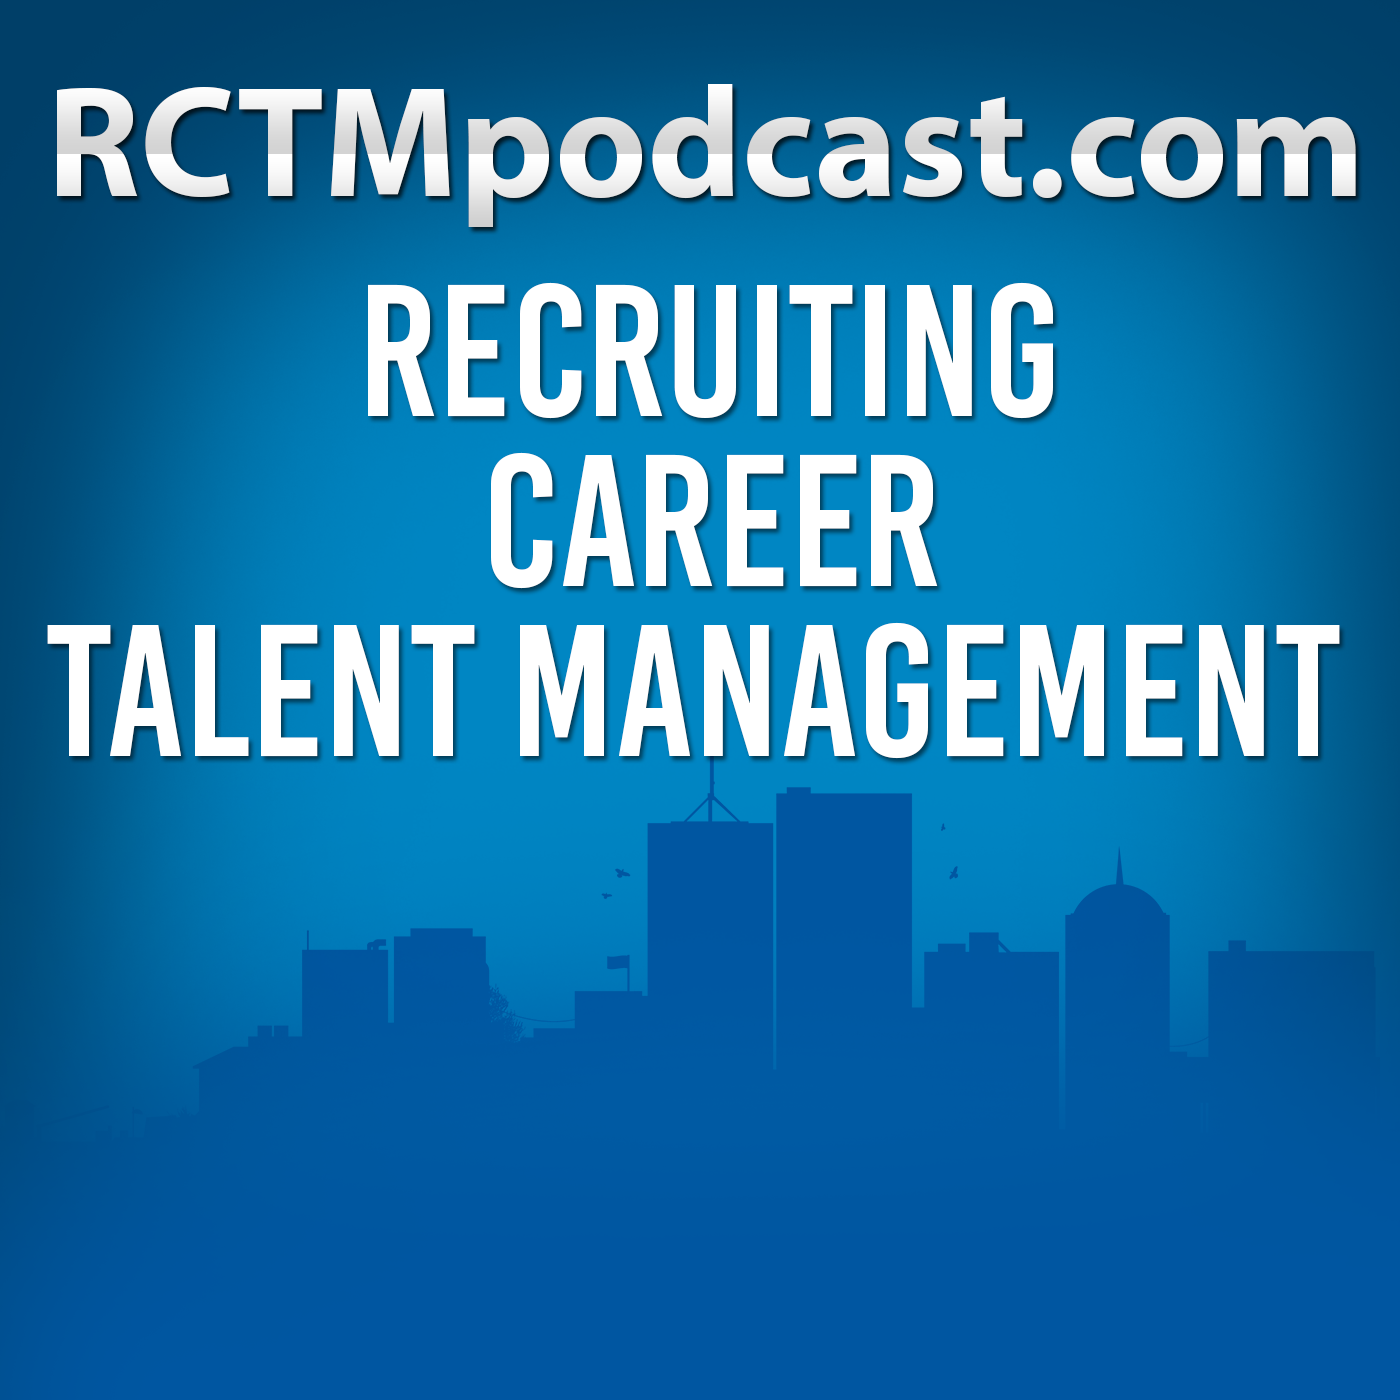 RCTM - Recruiting Career Talent Management Podcast